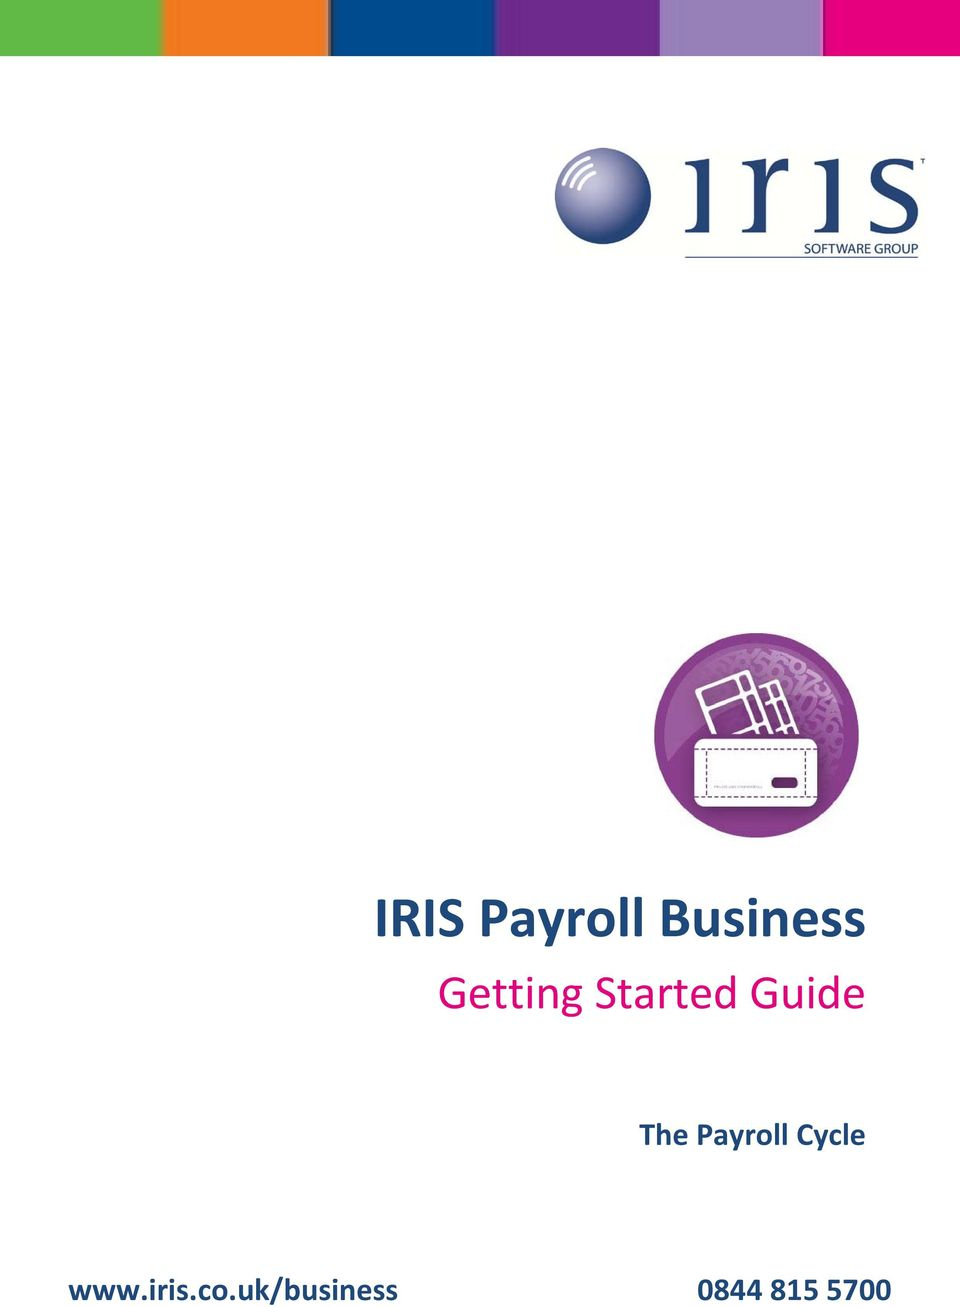 The Payroll Cycle www.